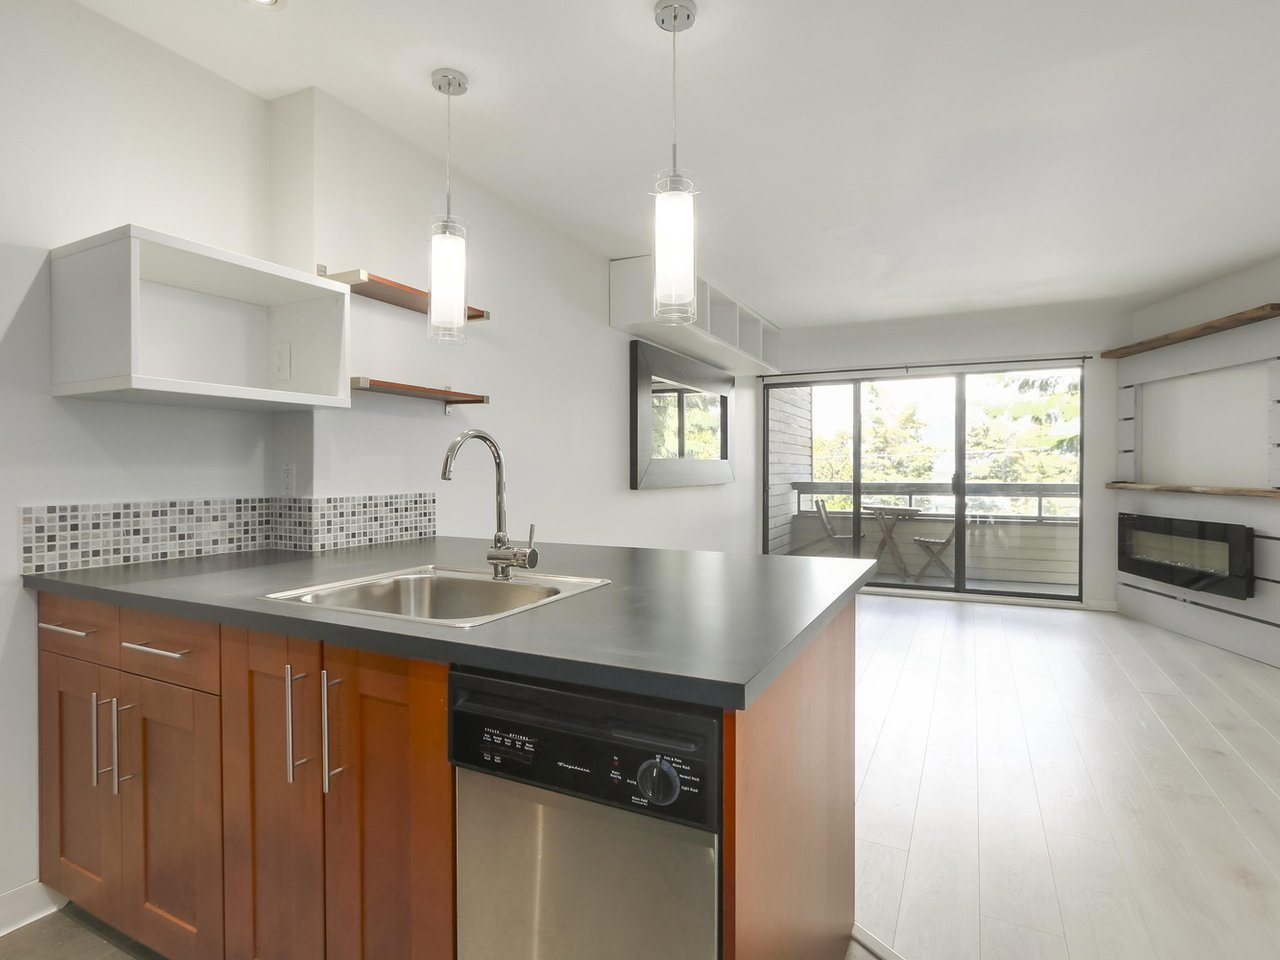 """Main Photo: 202 2234 PRINCE ALBERT Street in Vancouver: Mount Pleasant VE Condo for sale in """"OASIS"""" (Vancouver East)  : MLS®# R2376523"""